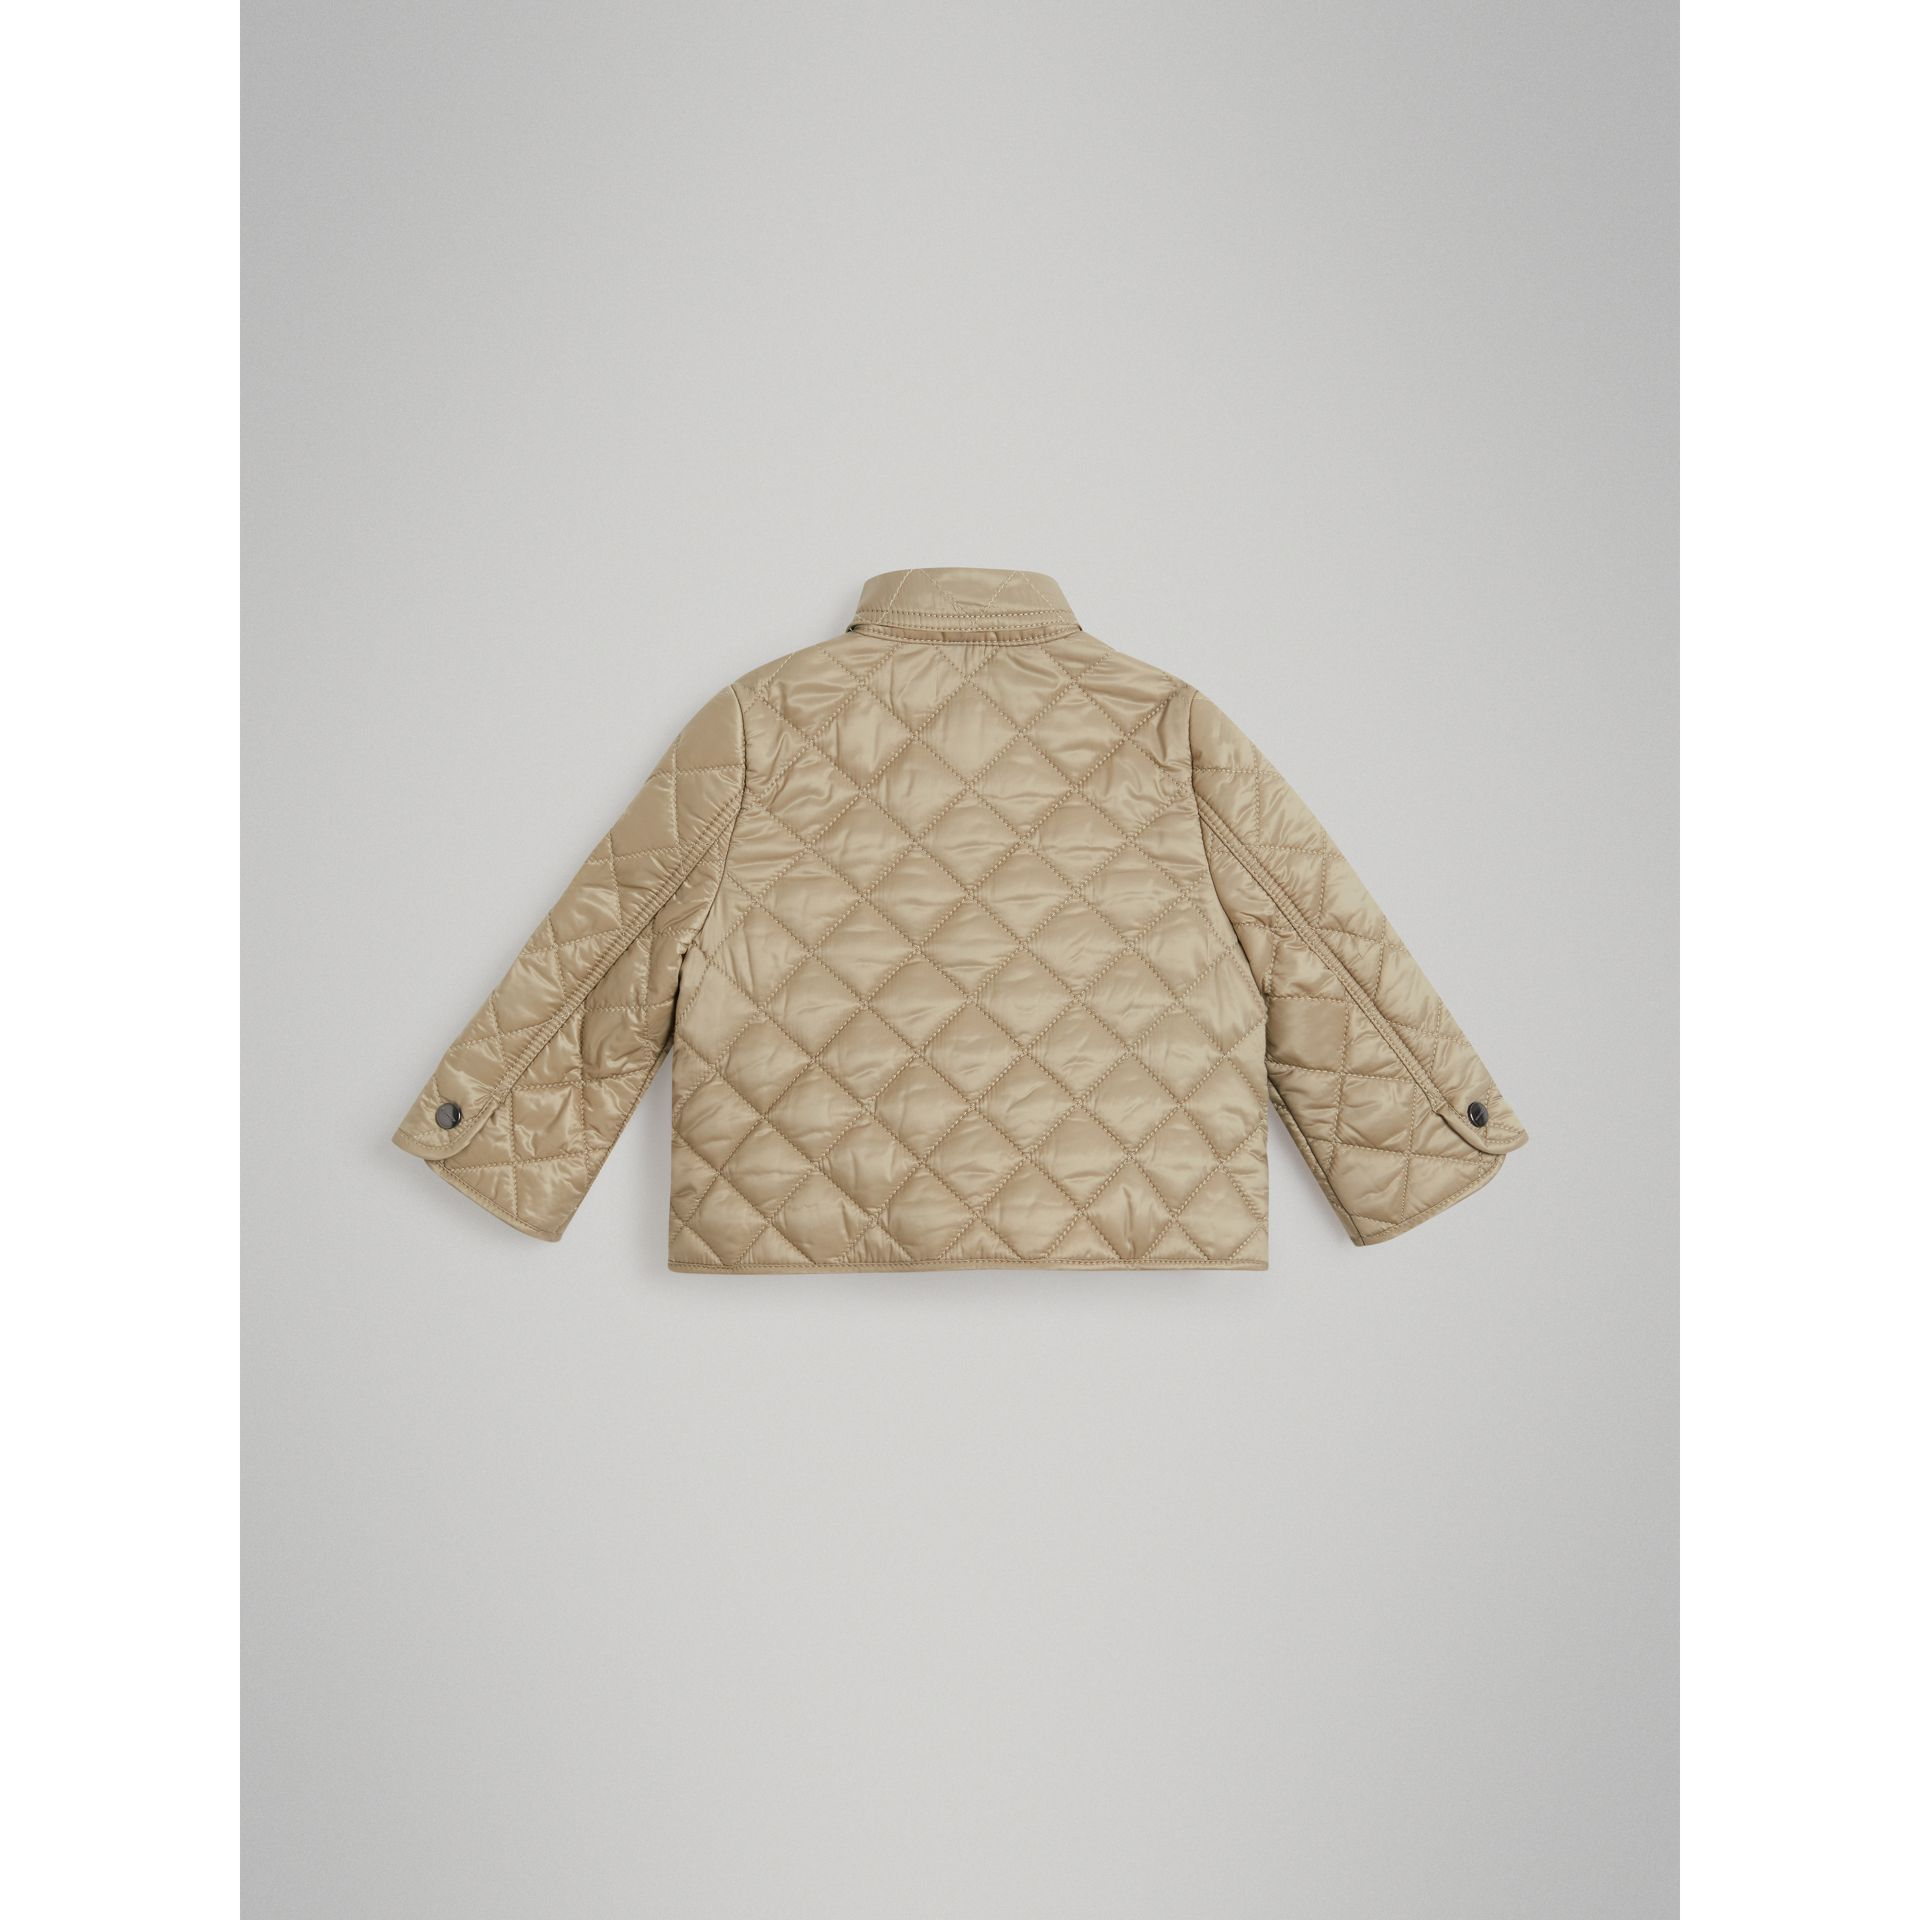 Lightweight Diamond Quilted Jacket in Mink | Burberry - gallery image 2